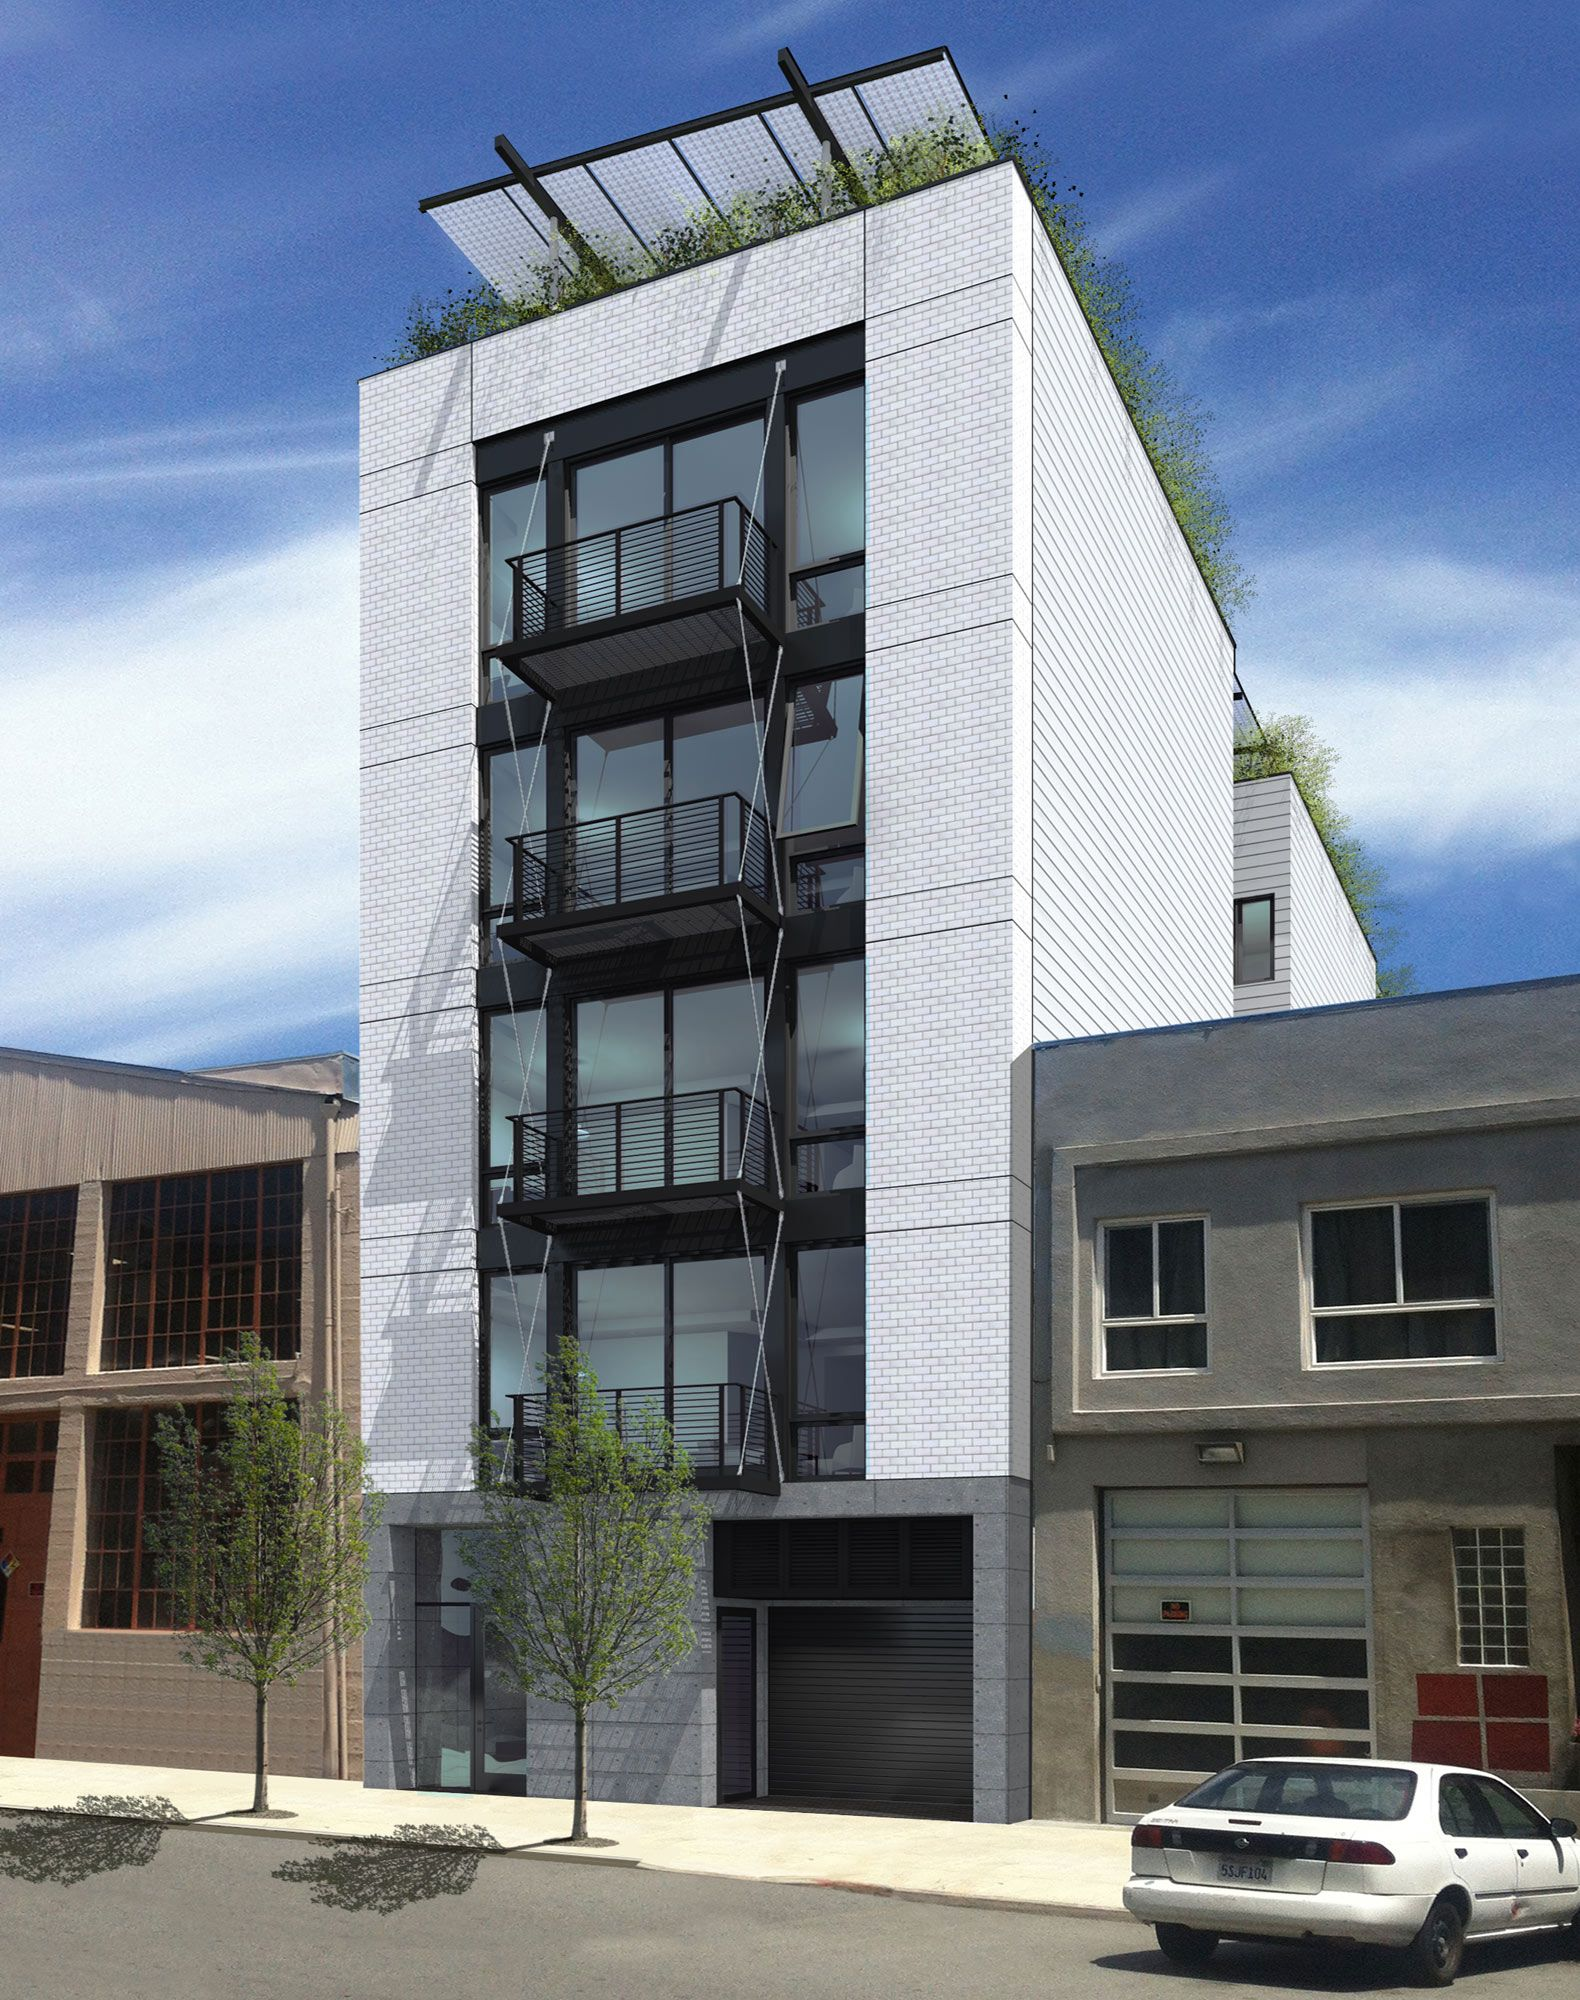 San francisco 39 s first passive house apartment complex for Small apartment building designs